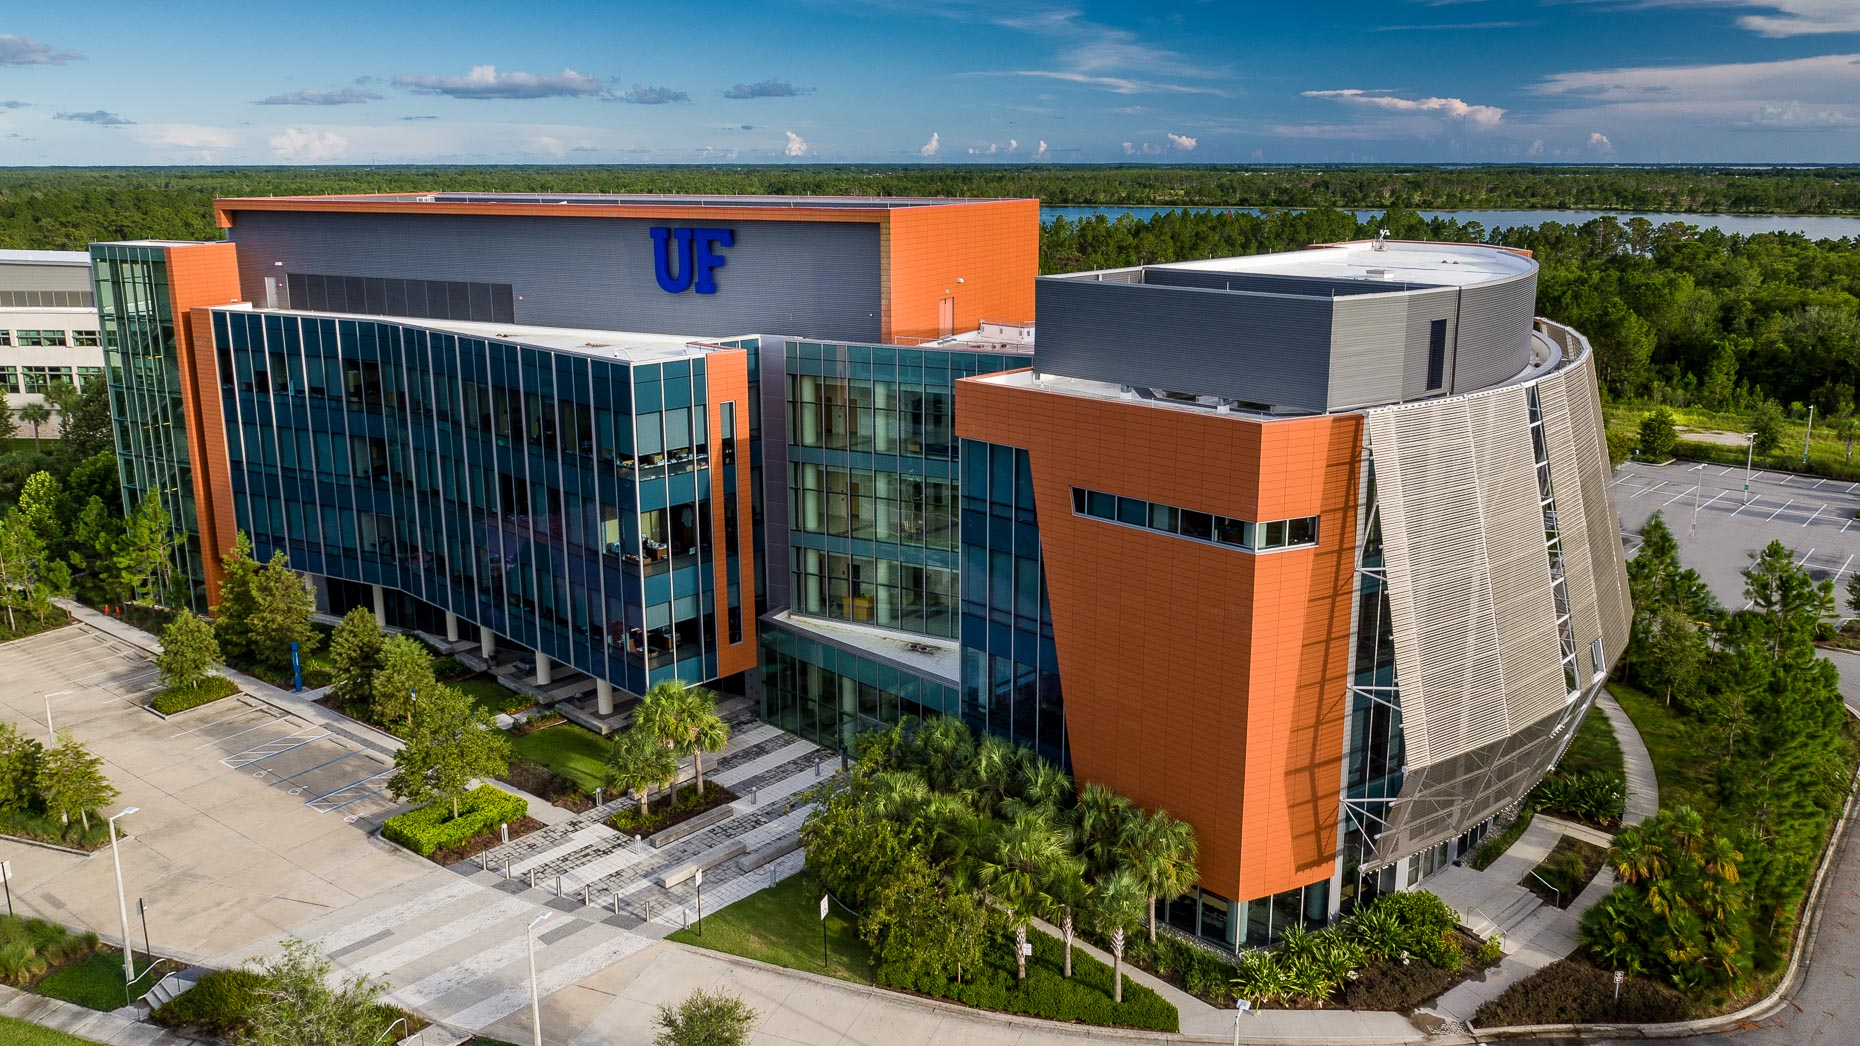 Aerial University of Florida Campus  - Mark Borosch Photography - Orlando, FL